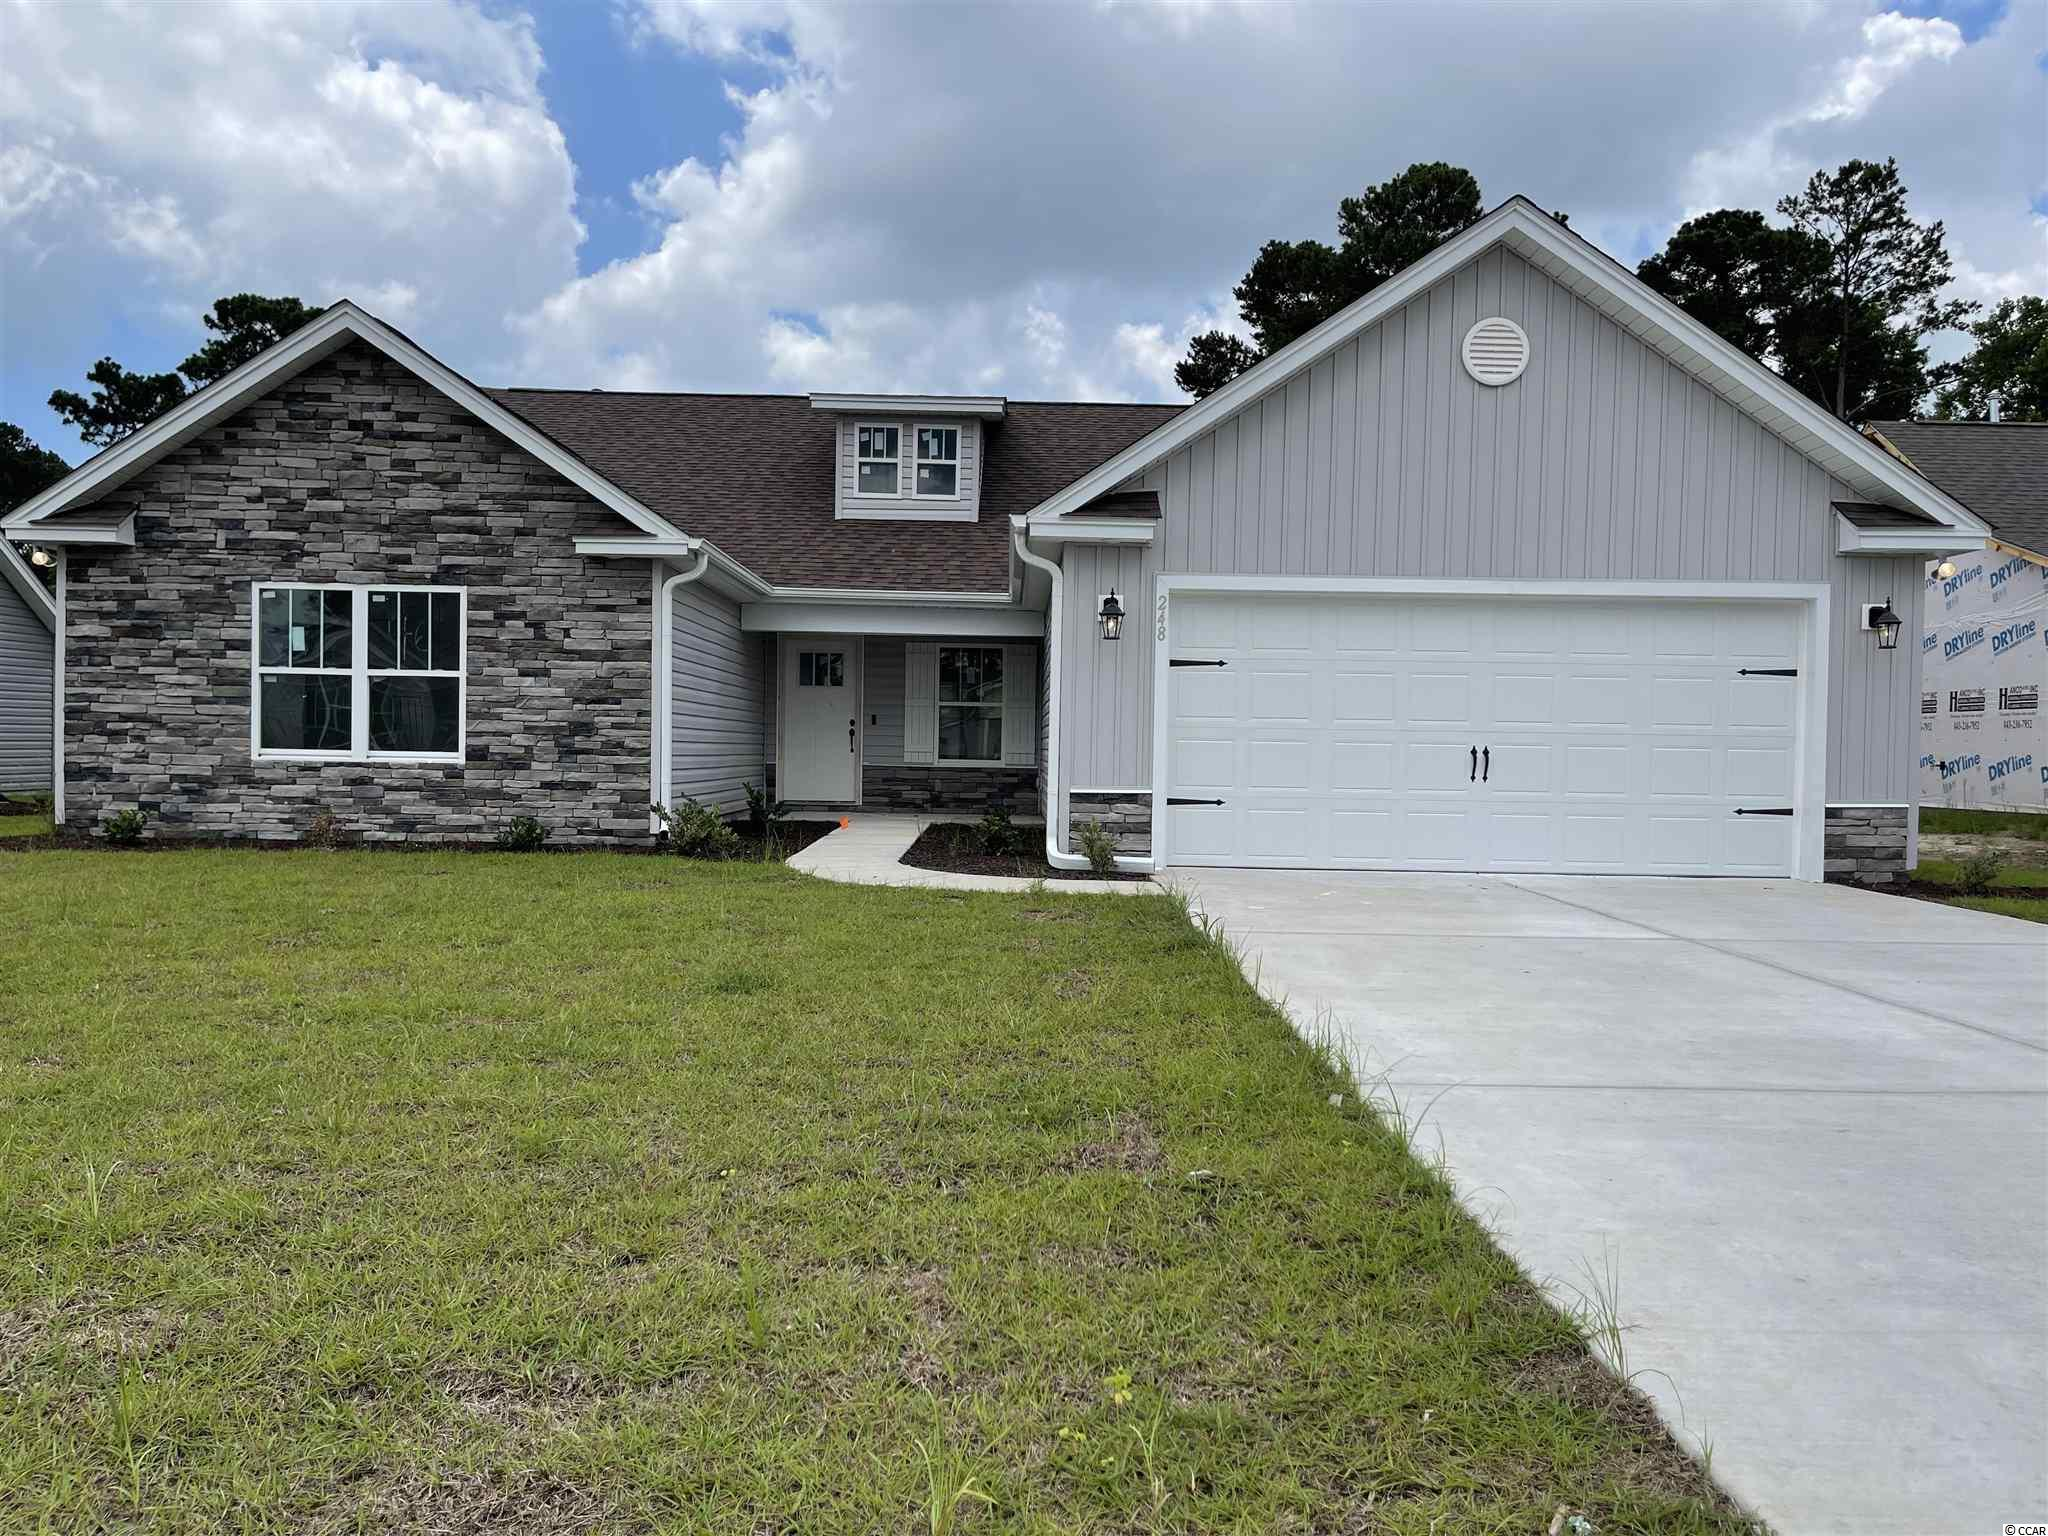 "Natural Gas quiet community located in Little River/North Myrtle Beach only a few miles from the Beach and major shopping! This is the Tanzanite floor plan. Spacious open floor plan on a 0.20 ac home site featuring 3 bedrooms, 2,5 baths. This home includes finished 2 car garage, and a large rear porch!! Ceramic tile in all bathrooms and Laundry room, LVP flooring in Family Room, Foyer, Hall, Dining. Granite Kitchen Countertops, crown molding on kitchen cabinets with hardware included. Vaulted ceiling in Family room and every bedroom. Wainscot and 5 1/2 "" beaded baseboards for Custom look!! Home also includes TAEXX pest control tubing, lawn irrigation and Ring video doorbell!!! Stone accents on the exterior as well. All measurements are approximate *Photos of a similar home* Some items on the photos may be an additional cost. Anticipating completion time Summer 2021"